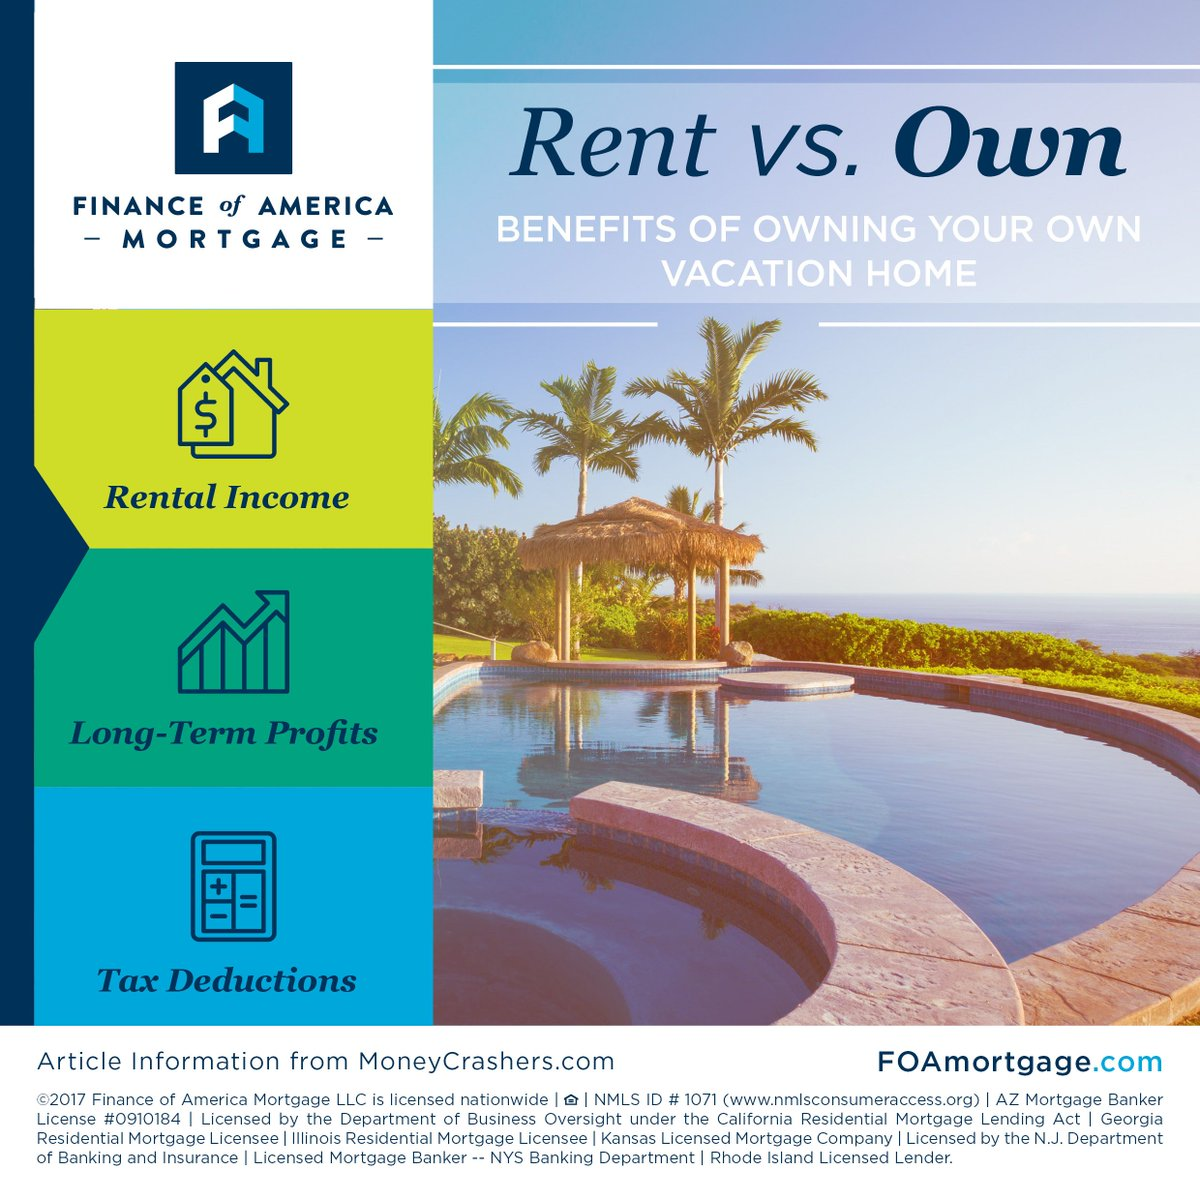 evelyn pysz on twitter why rent when you can own your own vacation